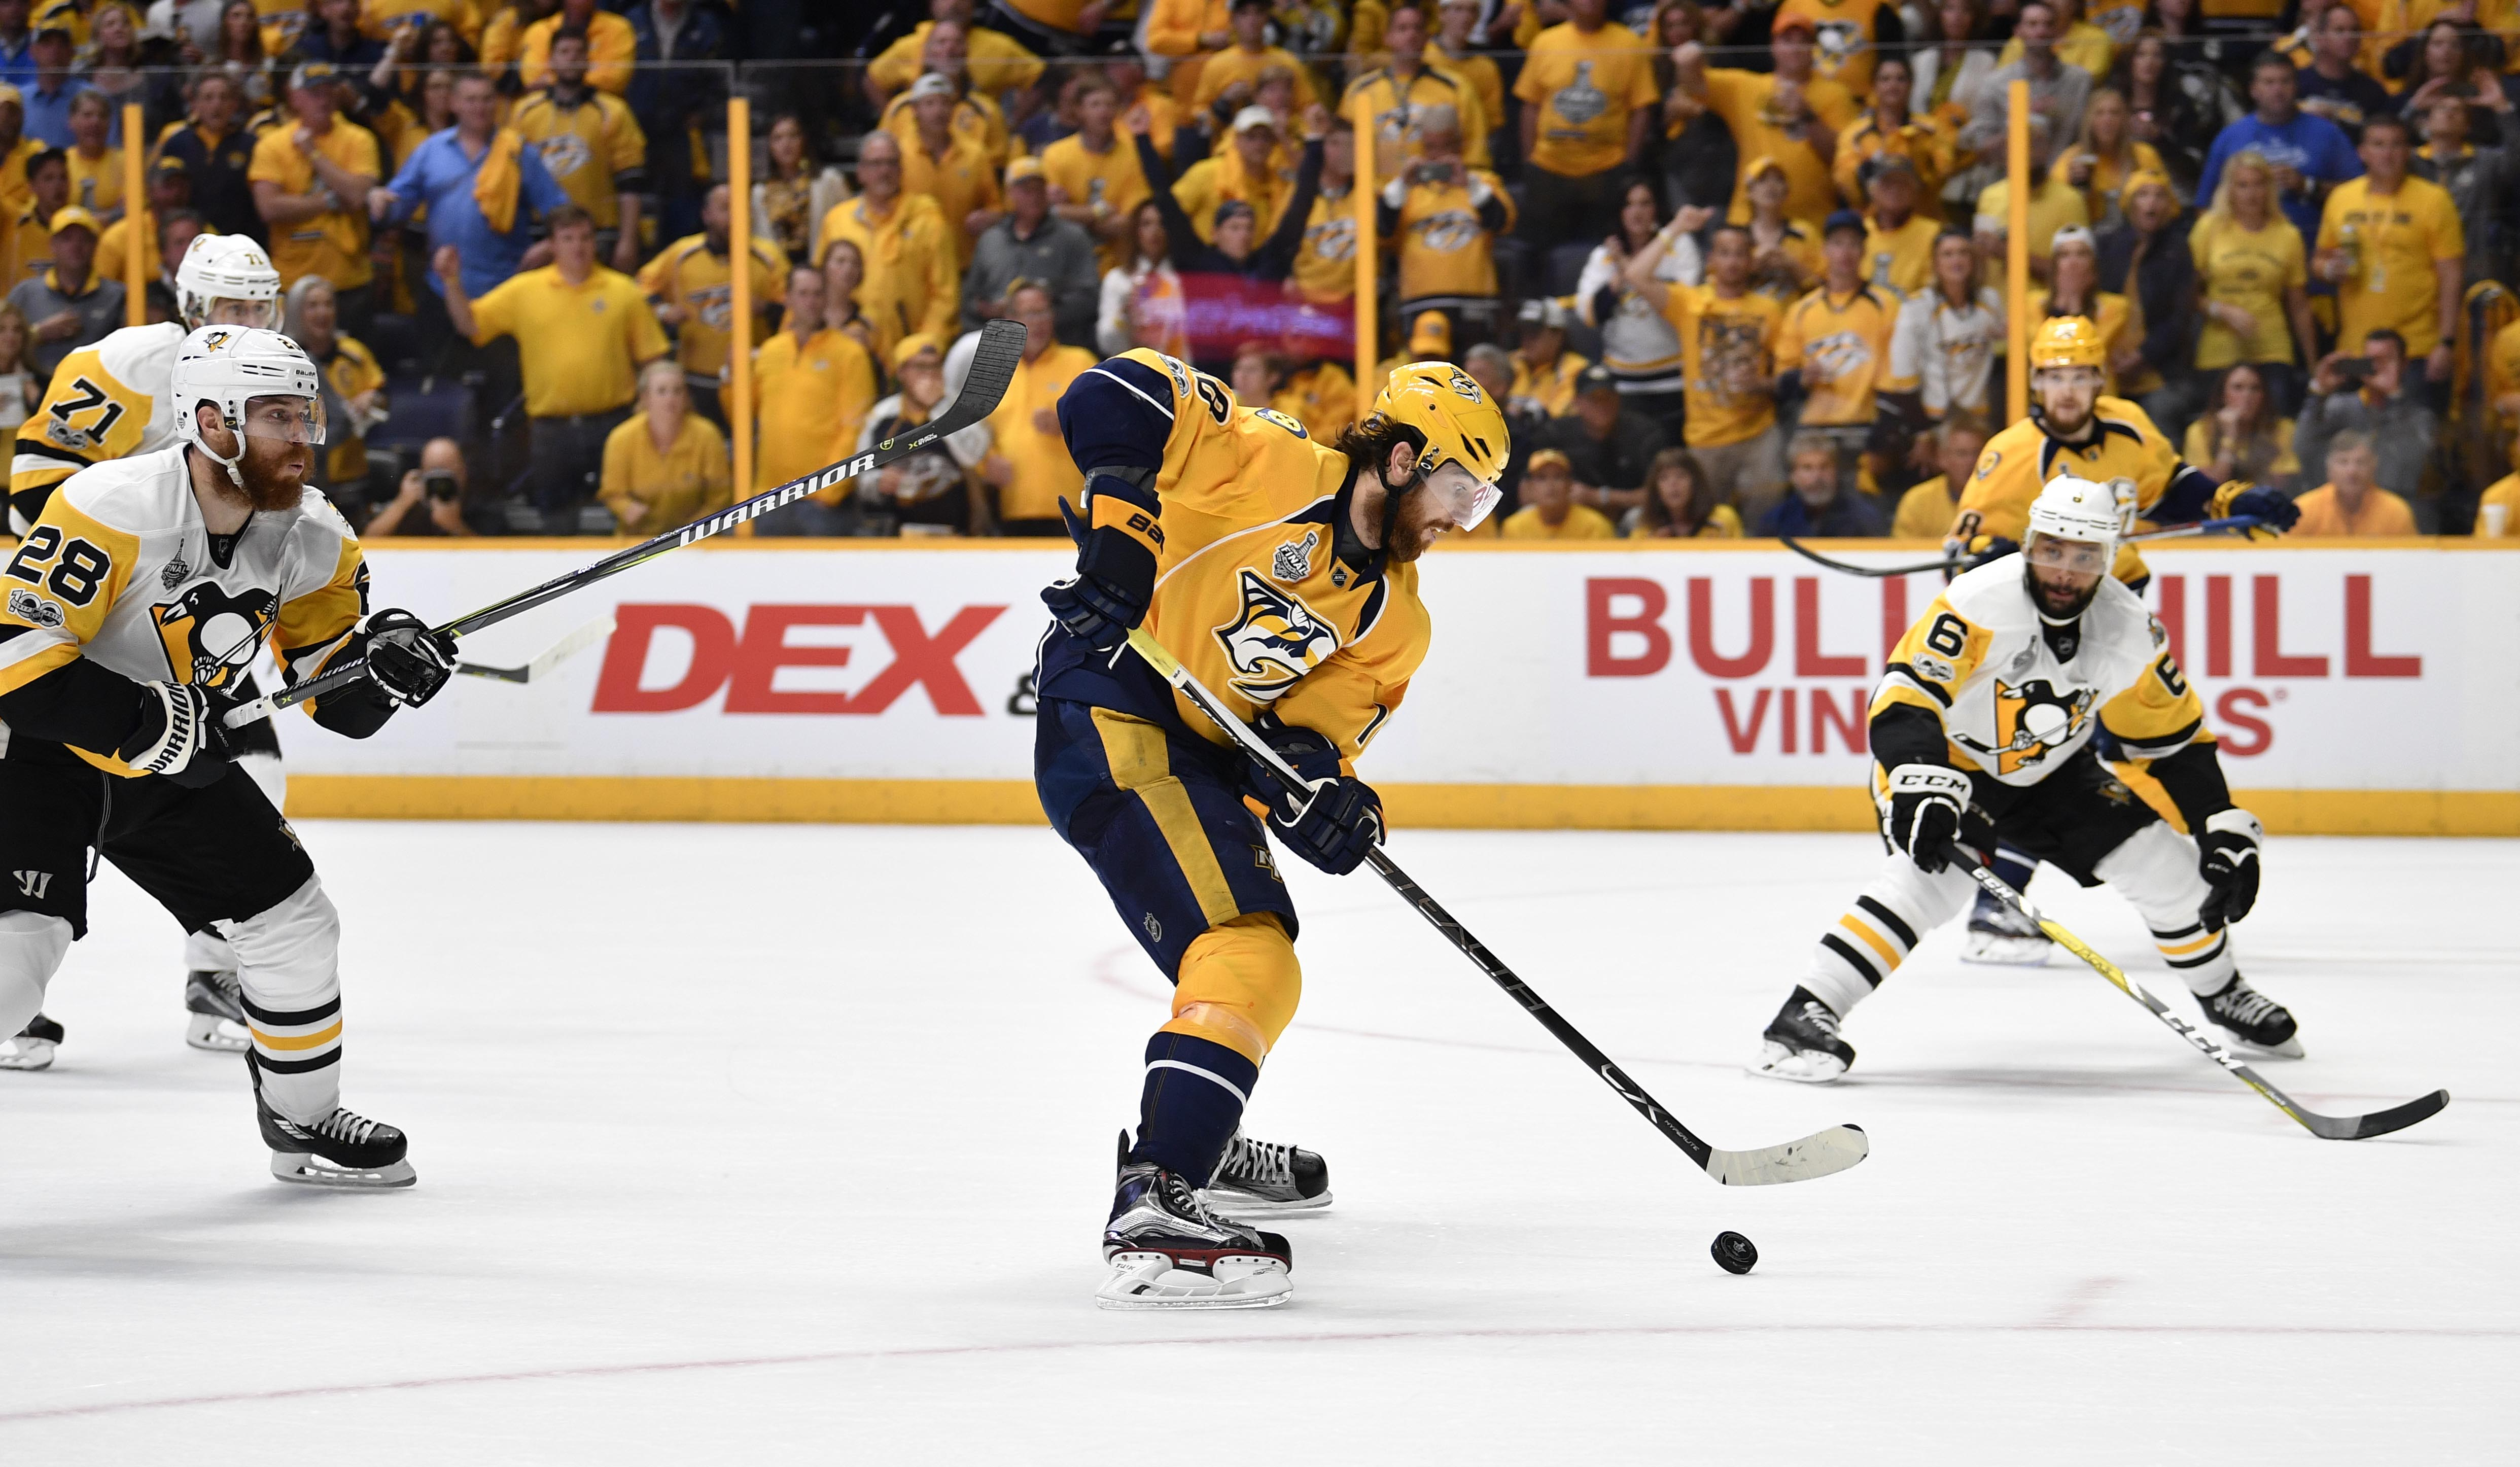 10088965-nhl-stanley-cup-final-pittsburgh-penguins-at-nashville-predators